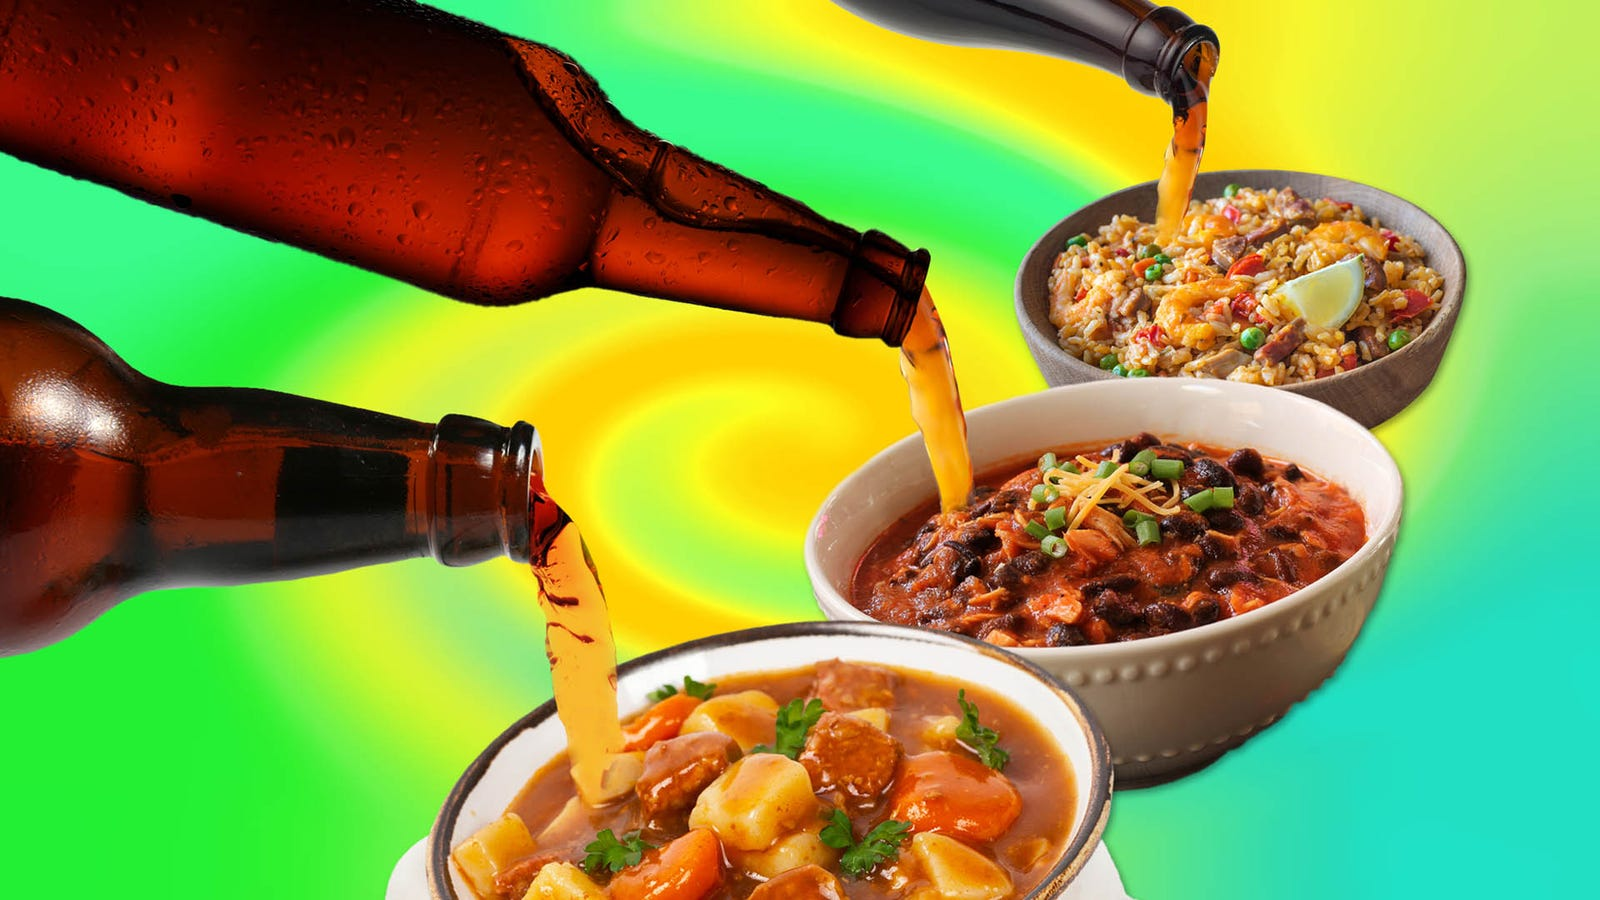 The Unified Theory Of Cooking With Beer has just 1 simple rule